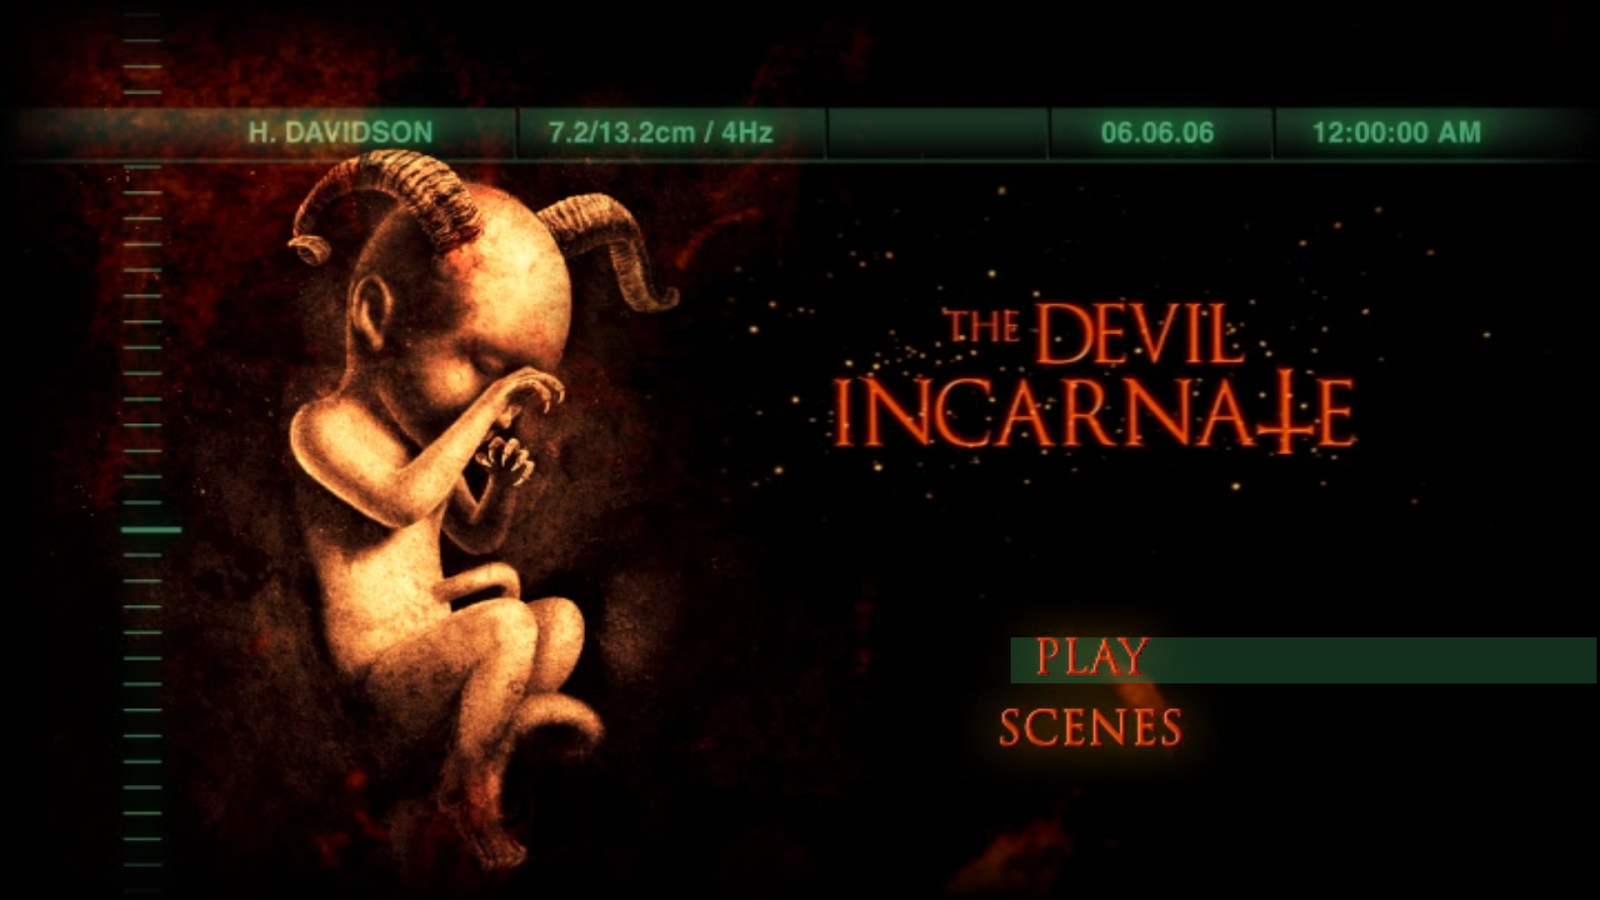 Film Review: The Devil Incarnate (2013)